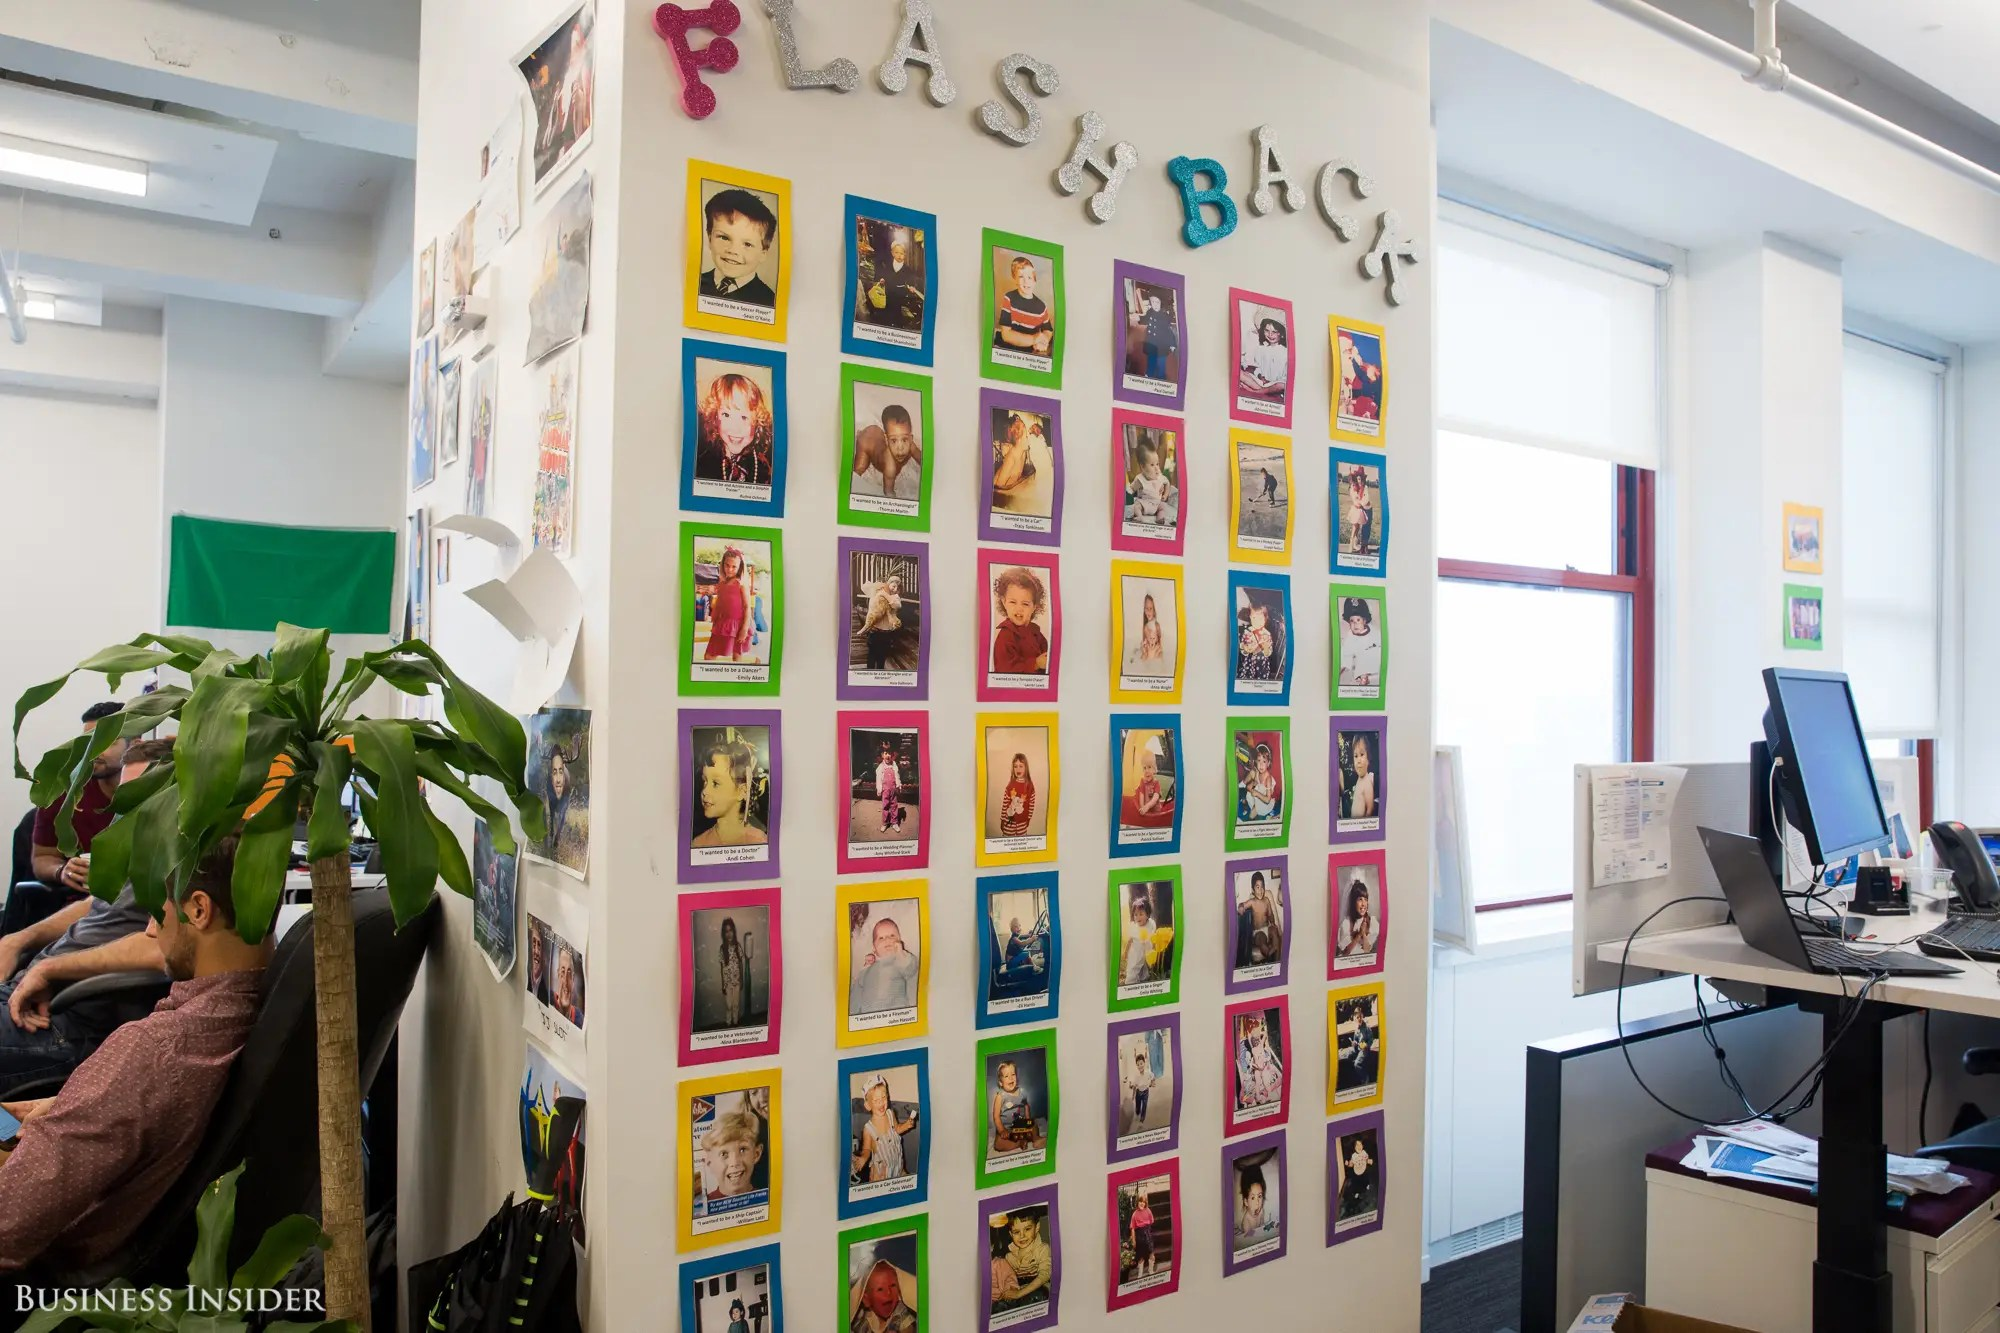 """We also visited a """"flashback"""" wall. Keeping with LinkedIn's focus on careers, employees submitted their baby photos, along with blurbs about what they wanted to be when they grew up."""